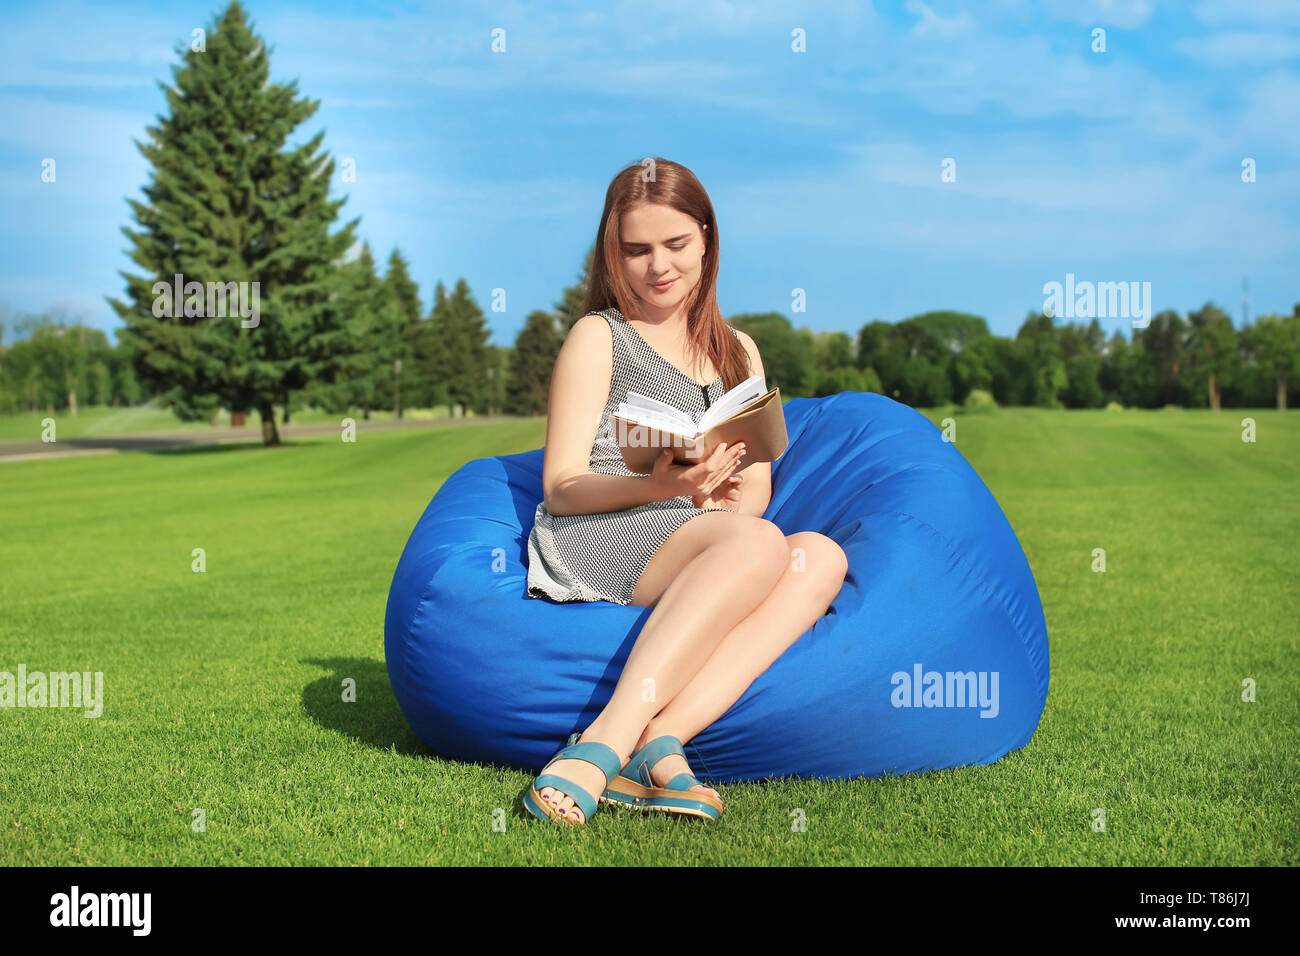 Young woman reading book while sitting on bean bag chair outdoors - Stock Image